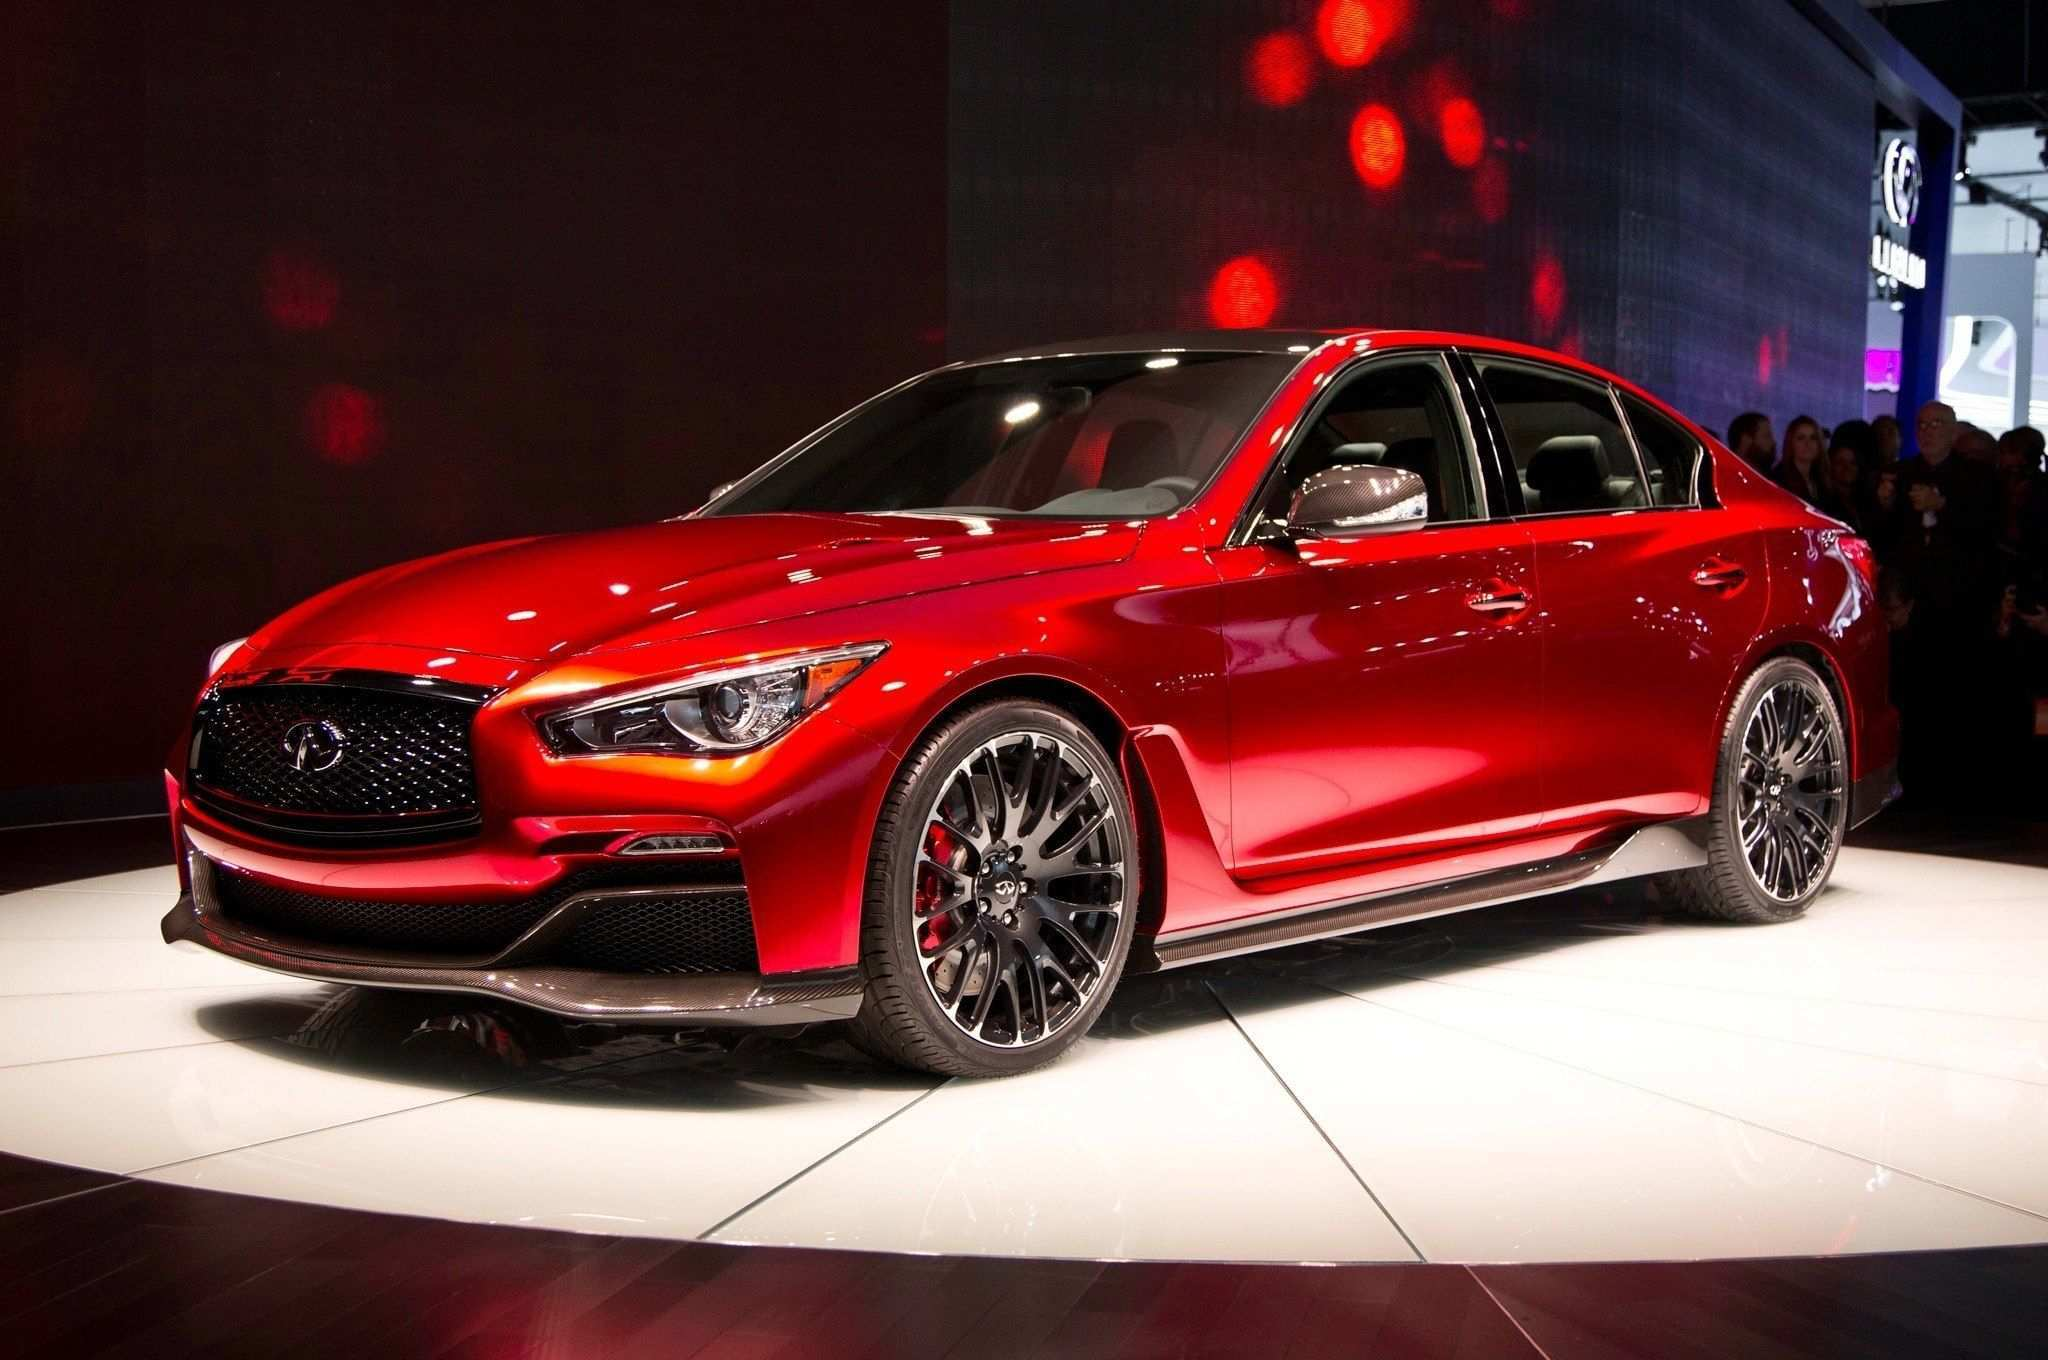 37 Gallery of 2020 Infiniti Red Sport Price with 2020 Infiniti Red Sport